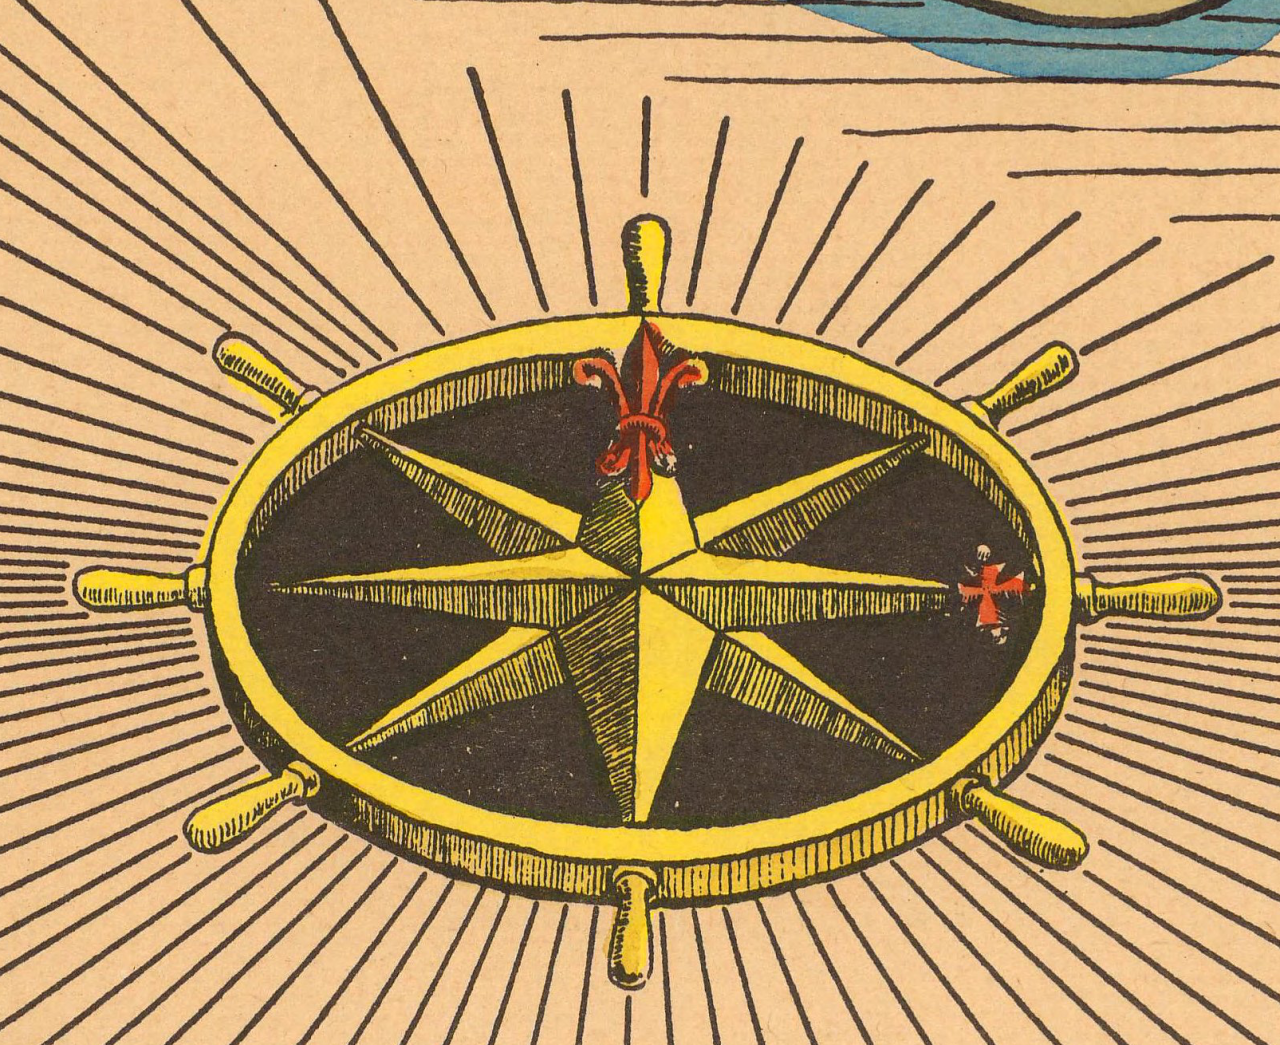 Points on a compass. Cape Cod. 1938. Pictorial map detail.  Rumsey